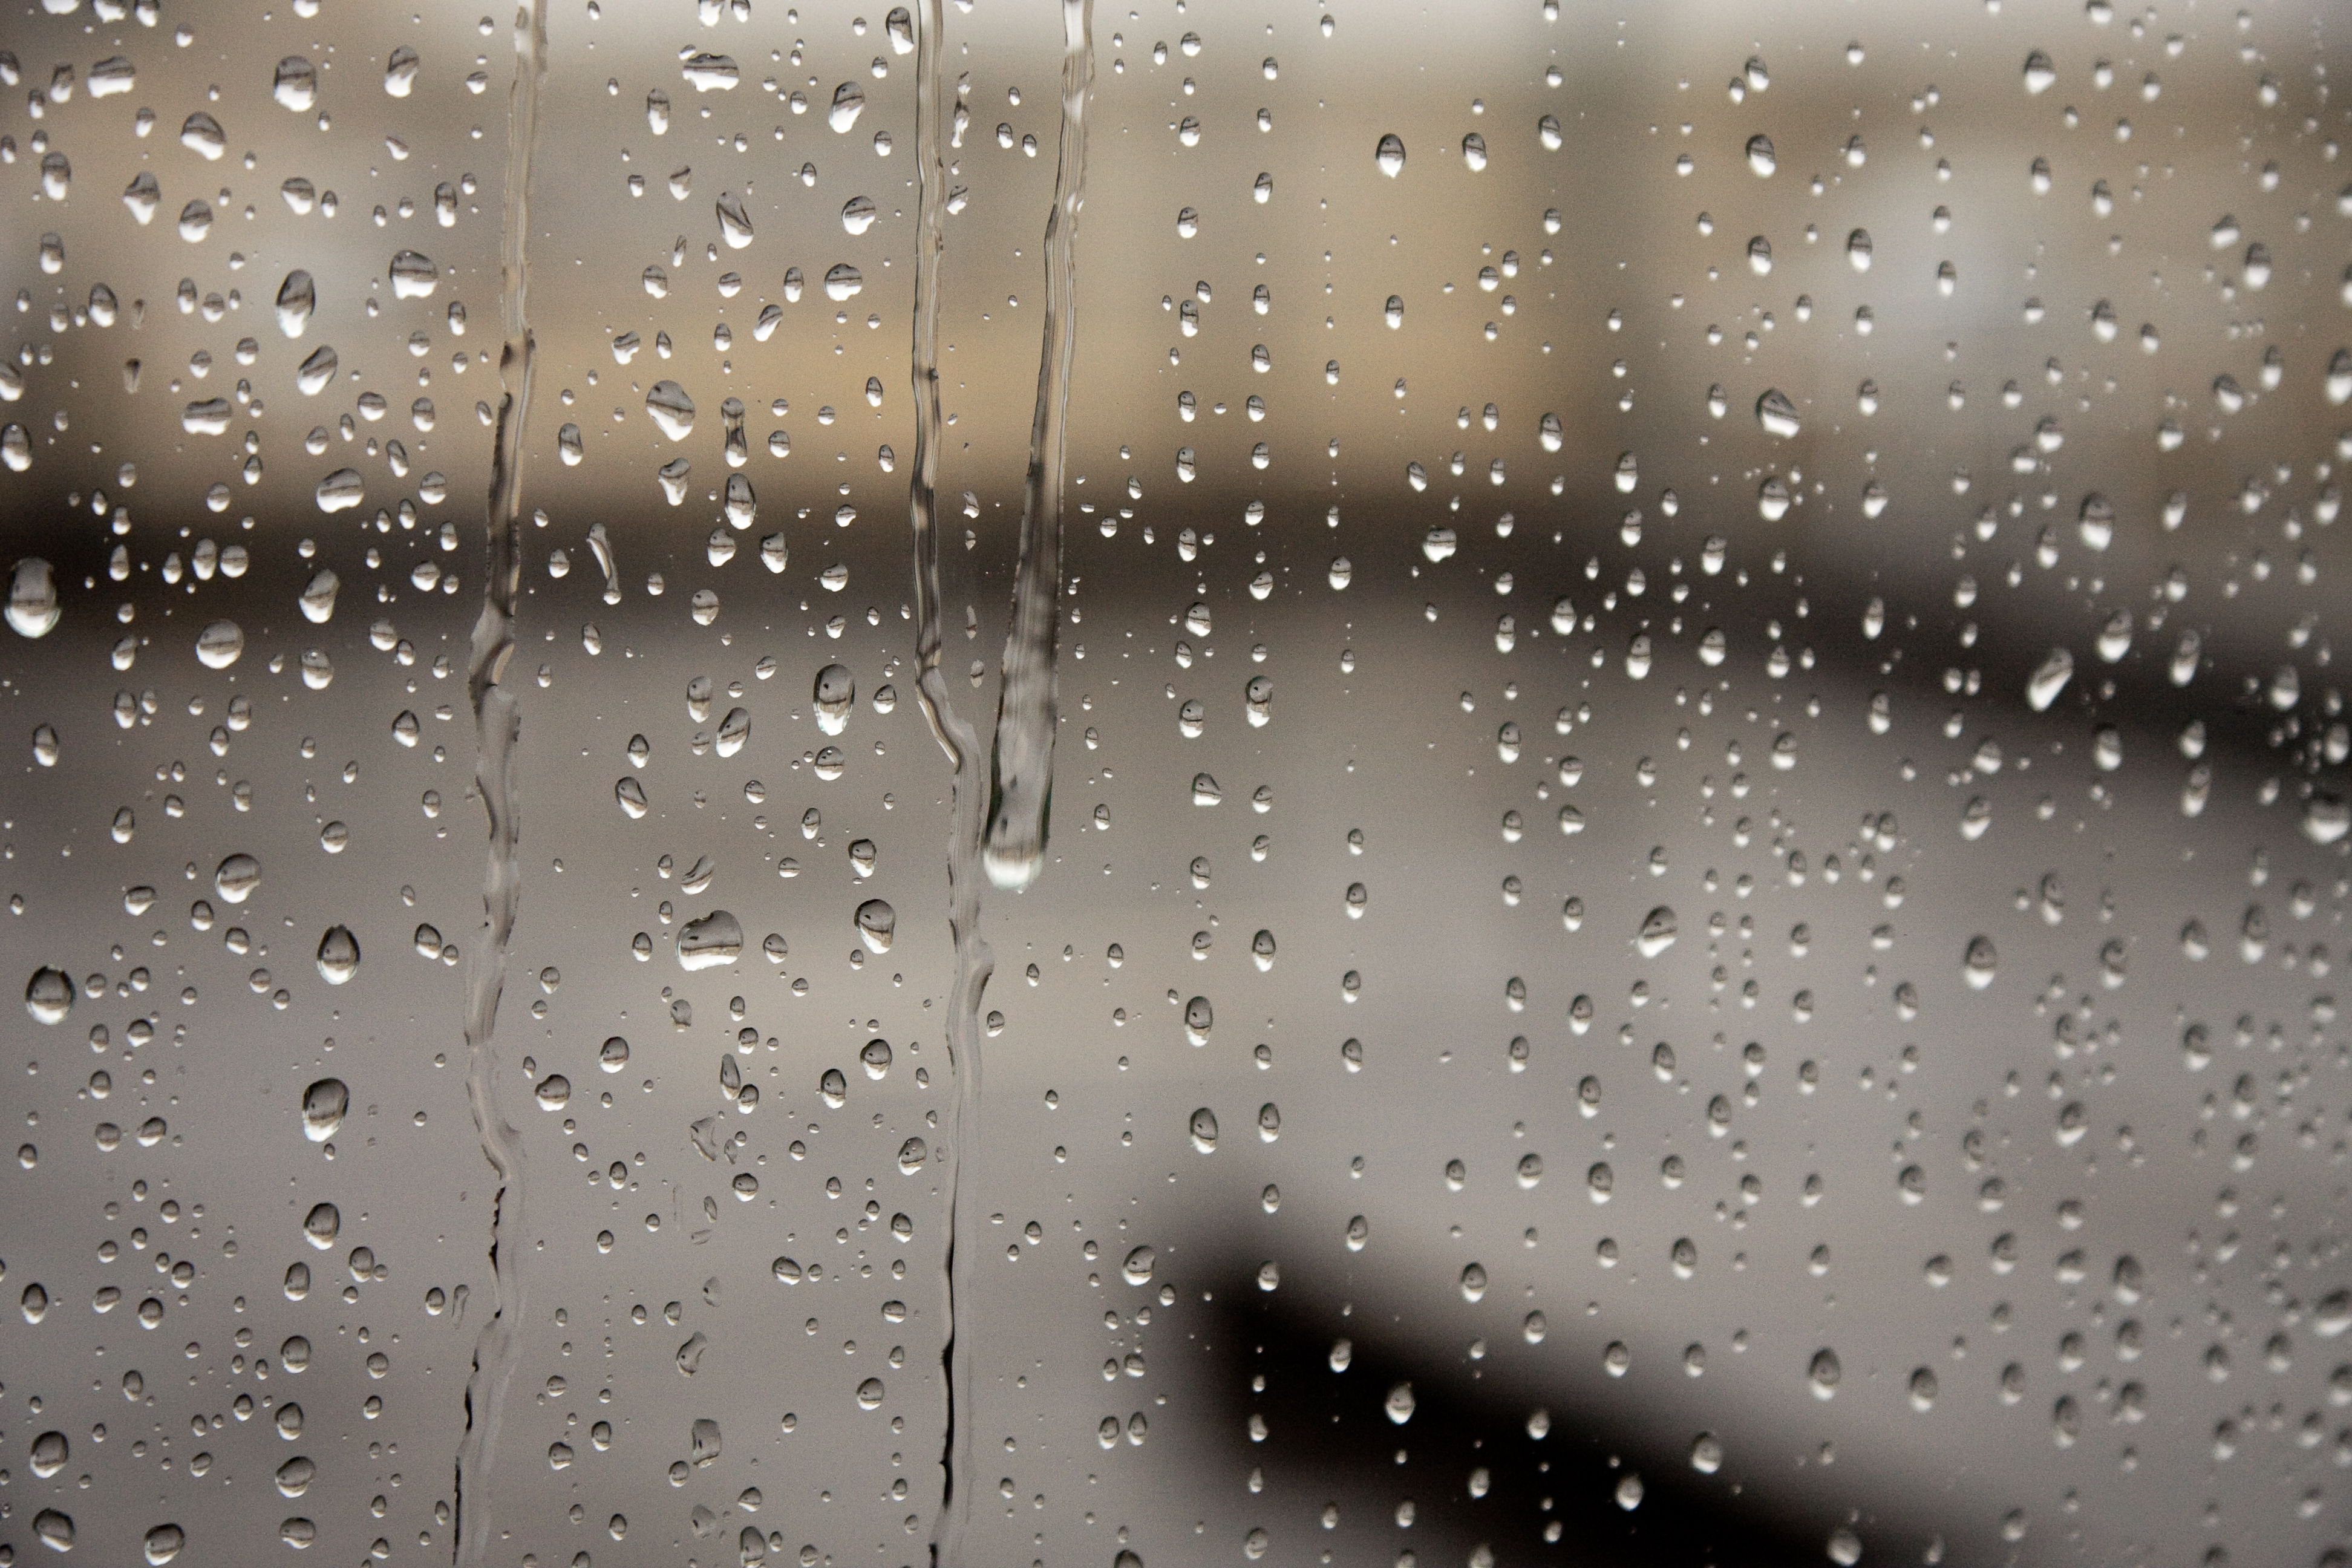 rain water dripping over a window flickr photo sharing. Black Bedroom Furniture Sets. Home Design Ideas